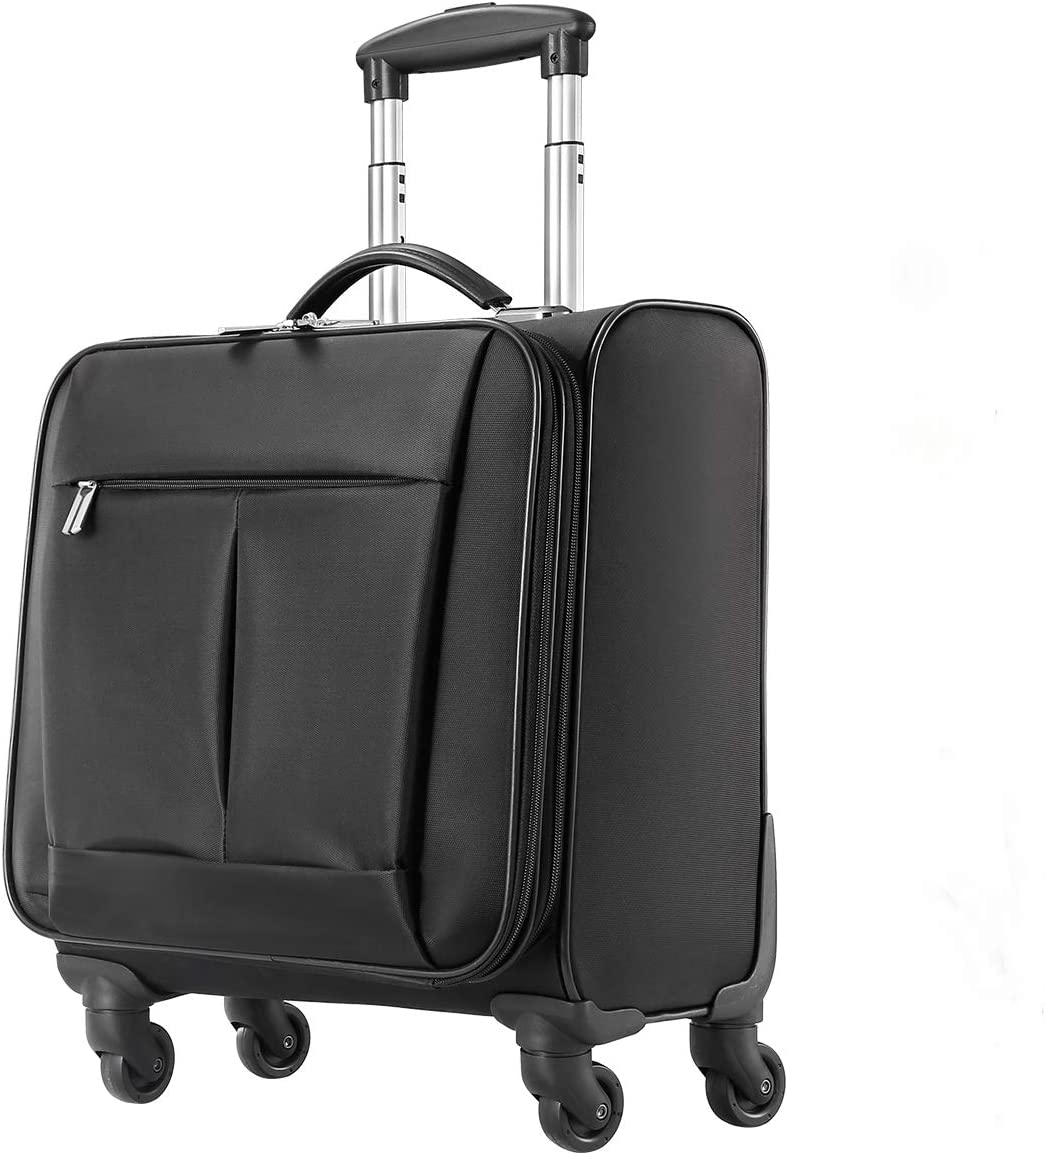 Softside Expandable Suitcase Luggage with Spinner Wheels,18inch Carry-on Lightweight Durable Suitcase